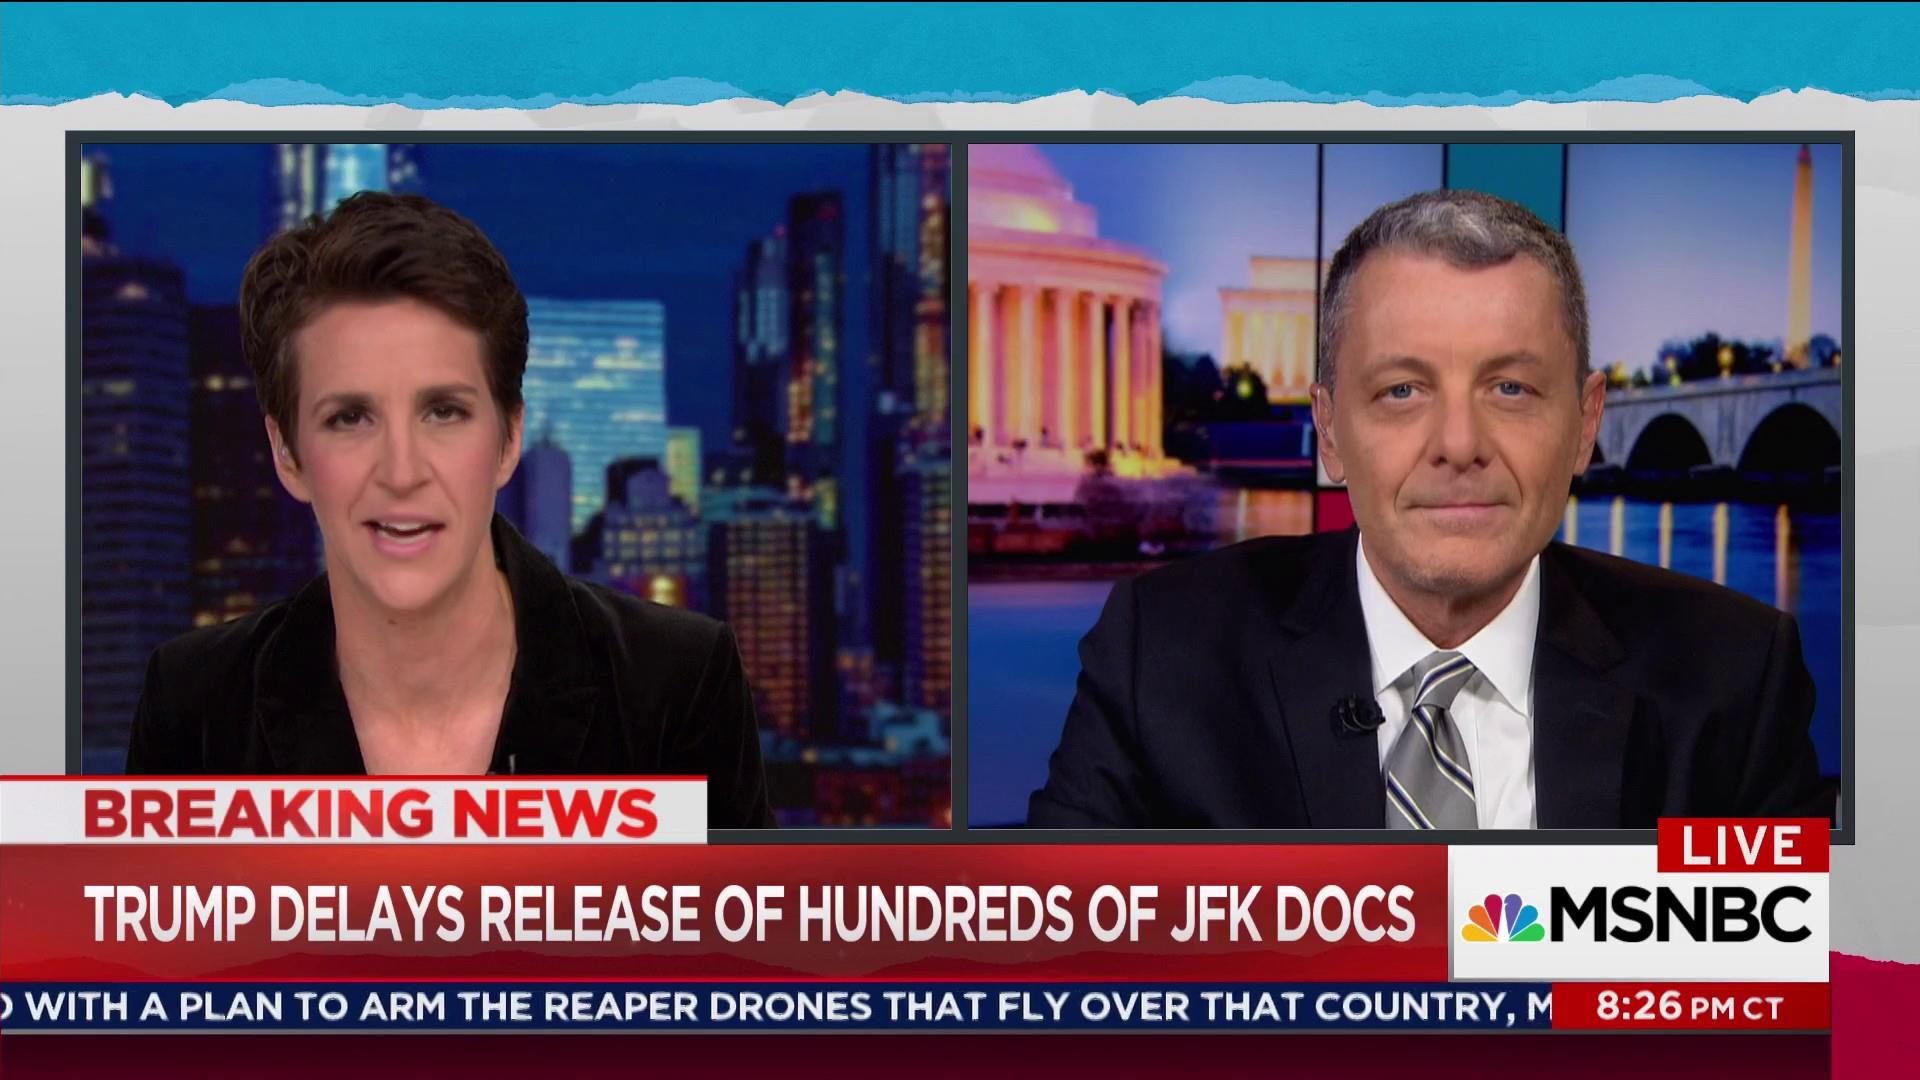 Hype falls short with JFK documents release